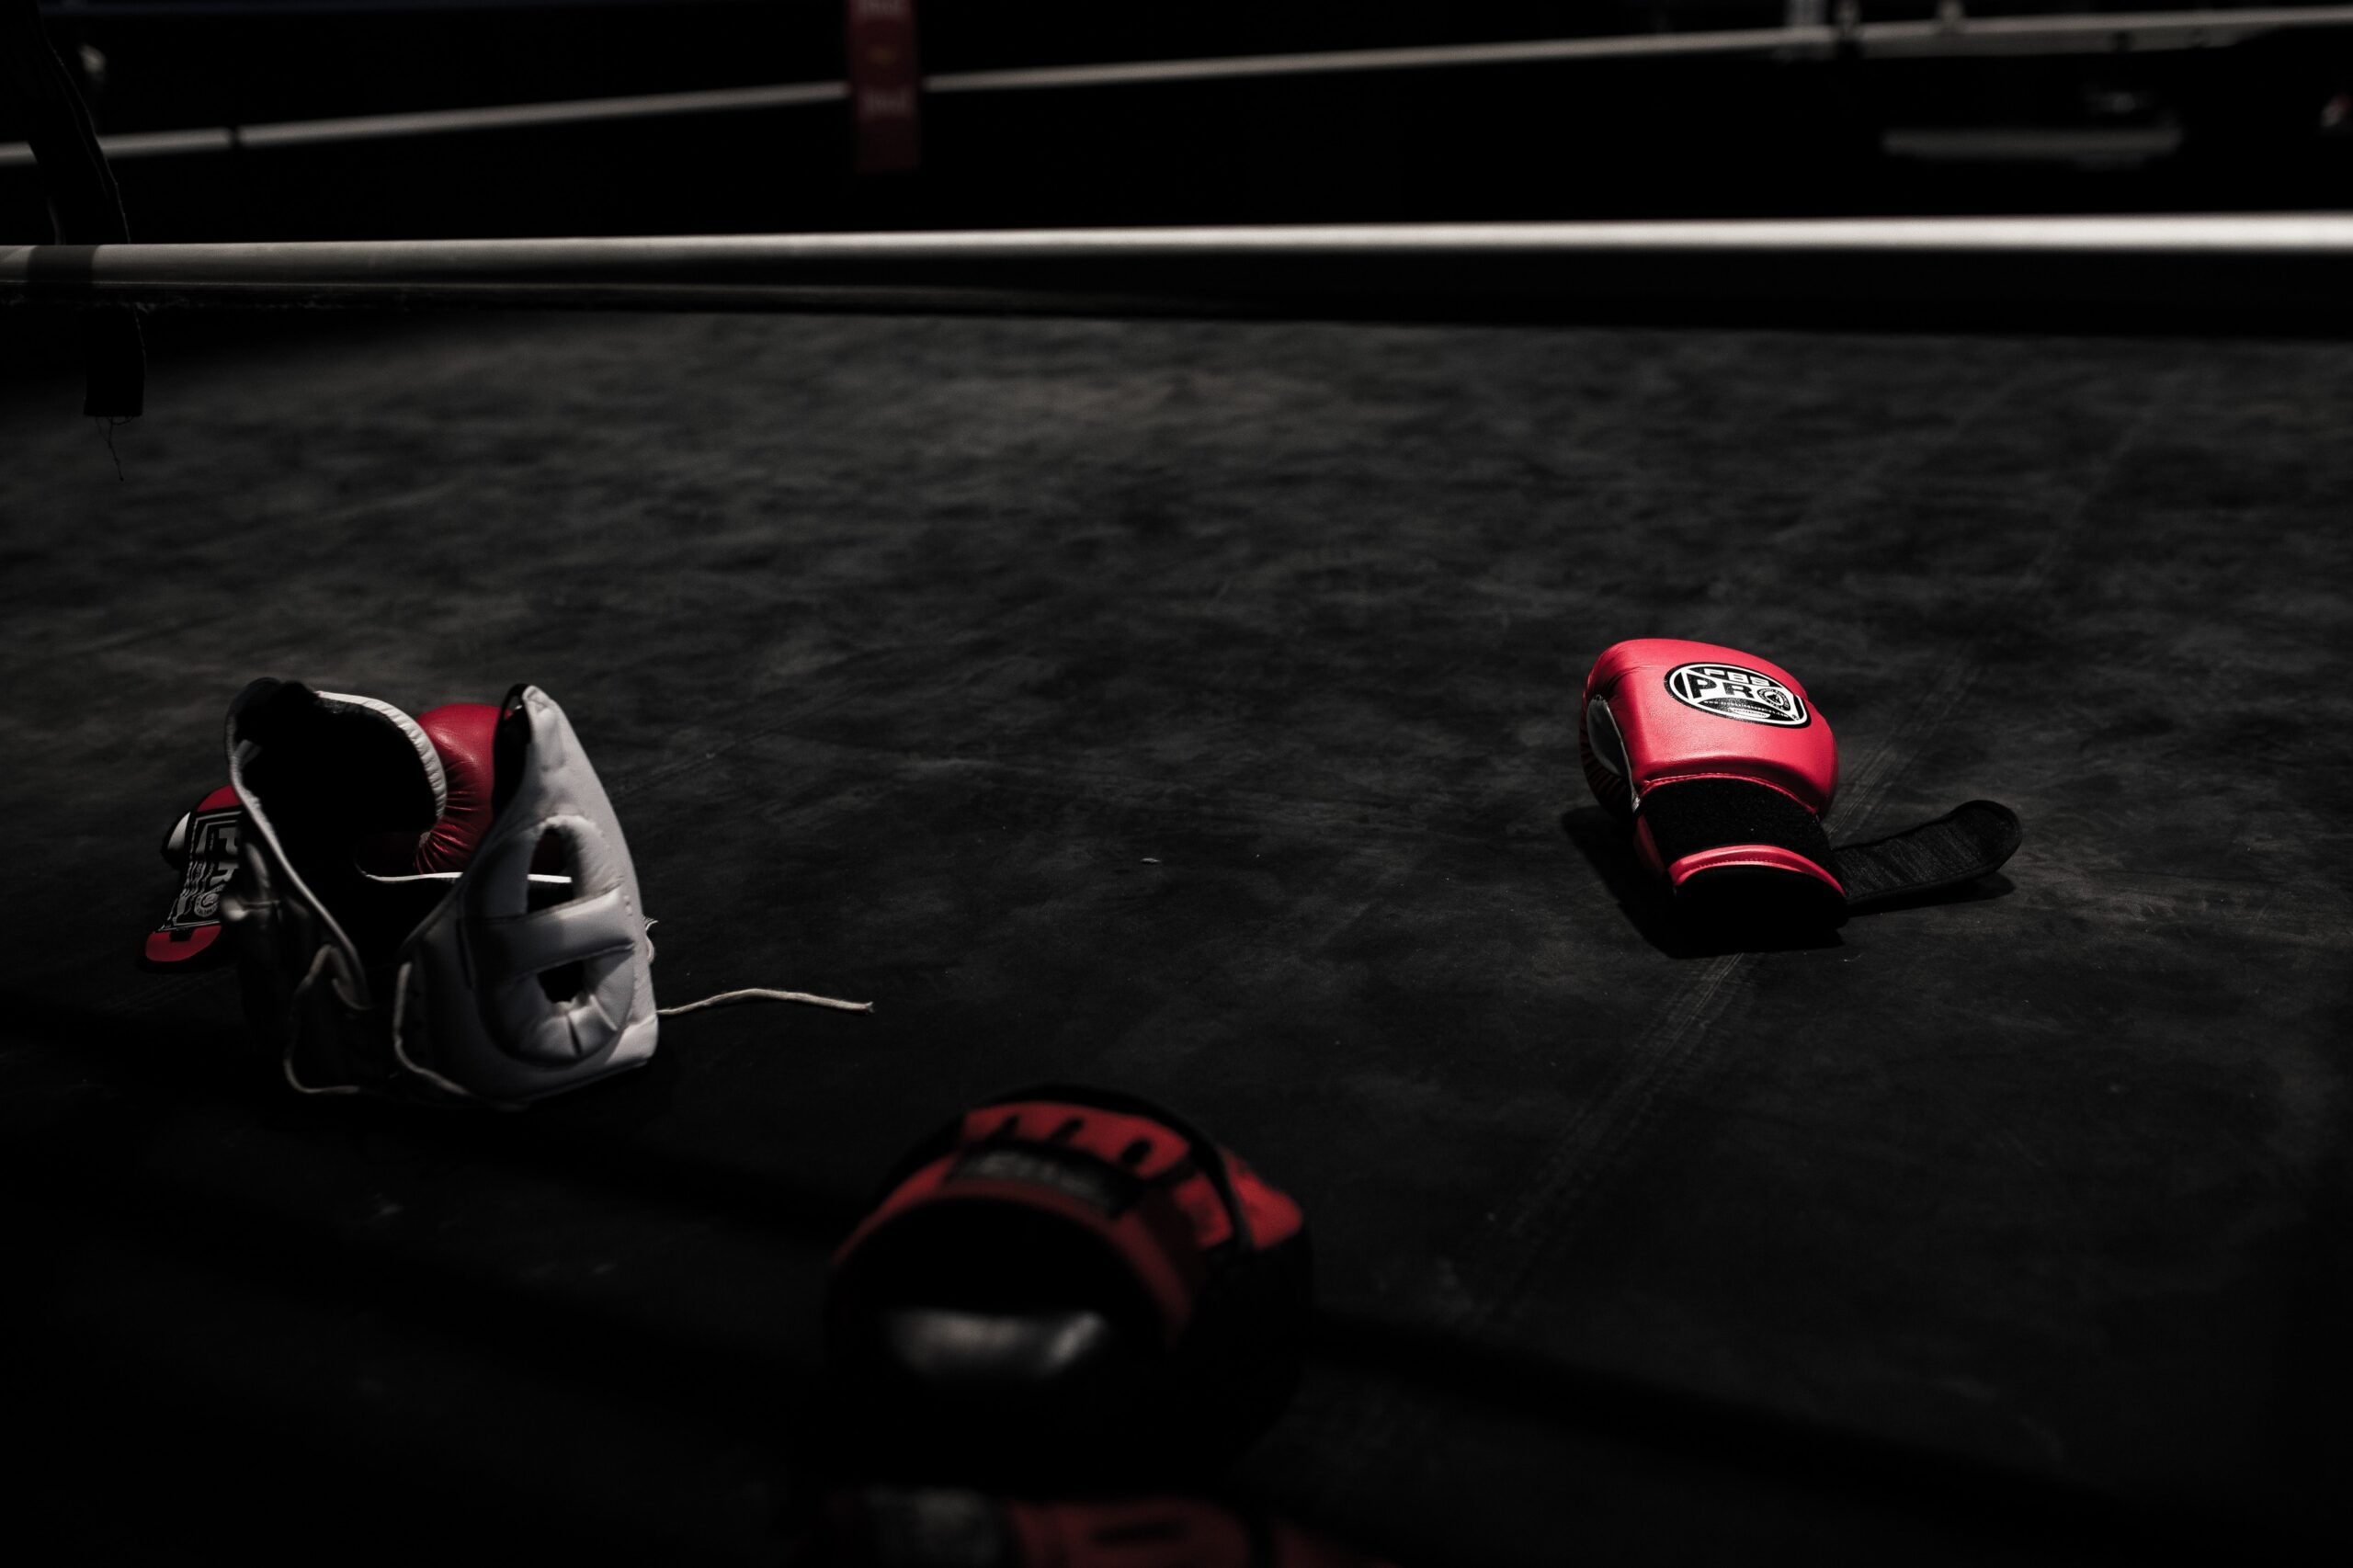 Boxing Equipment in the Ring